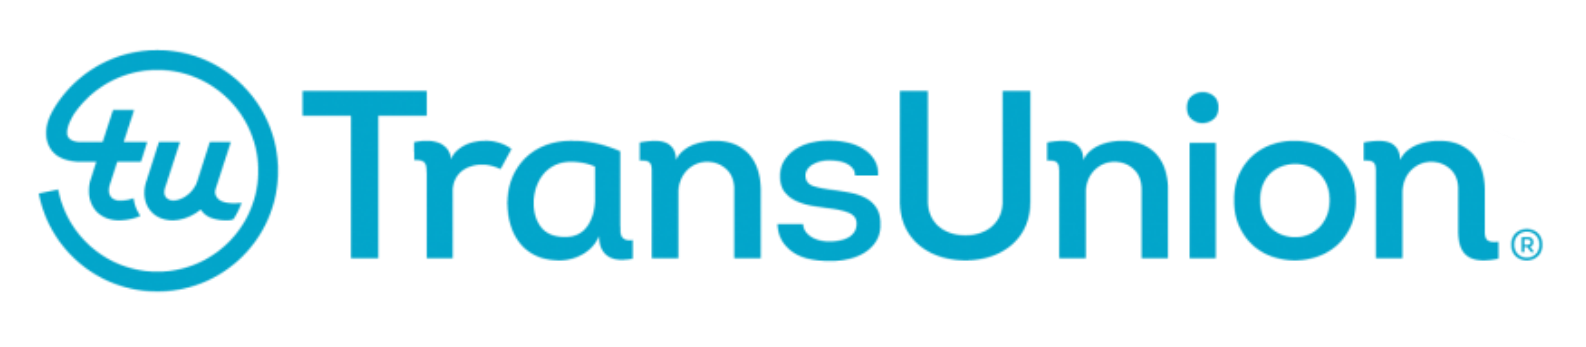 transunion-credit-repair-debt-settlement.png